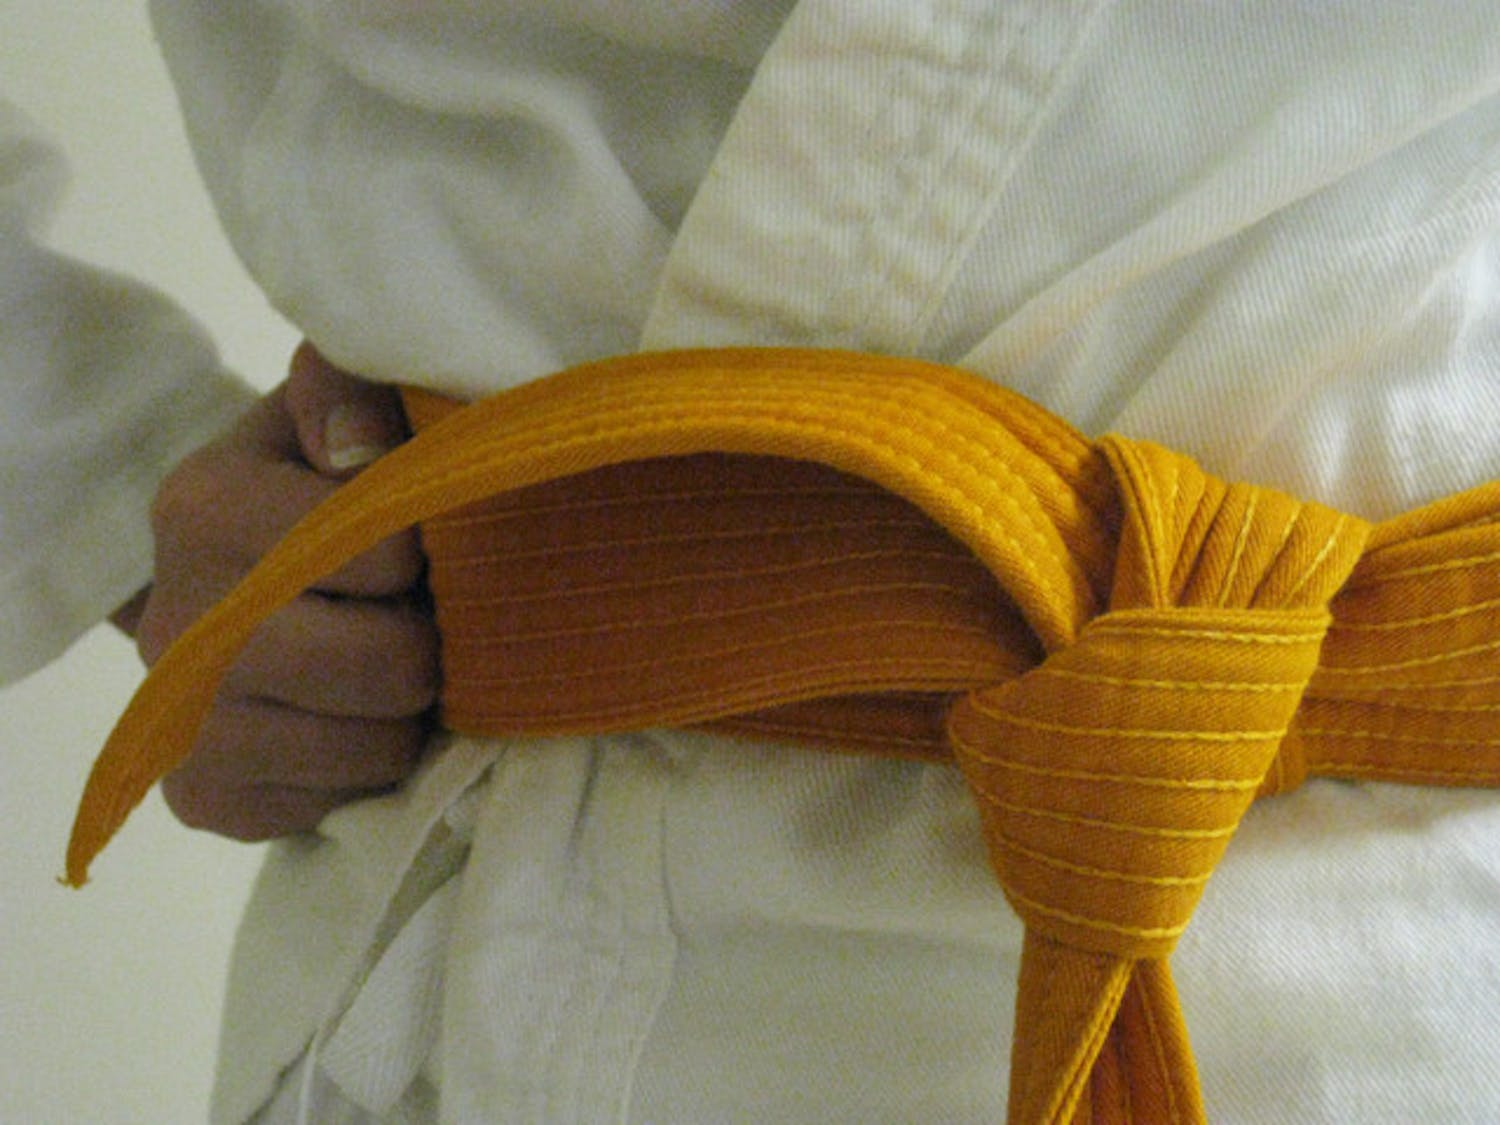 Christine, who is pictured here but wishes to remain anonymous, says she feels normal when practicing karate.